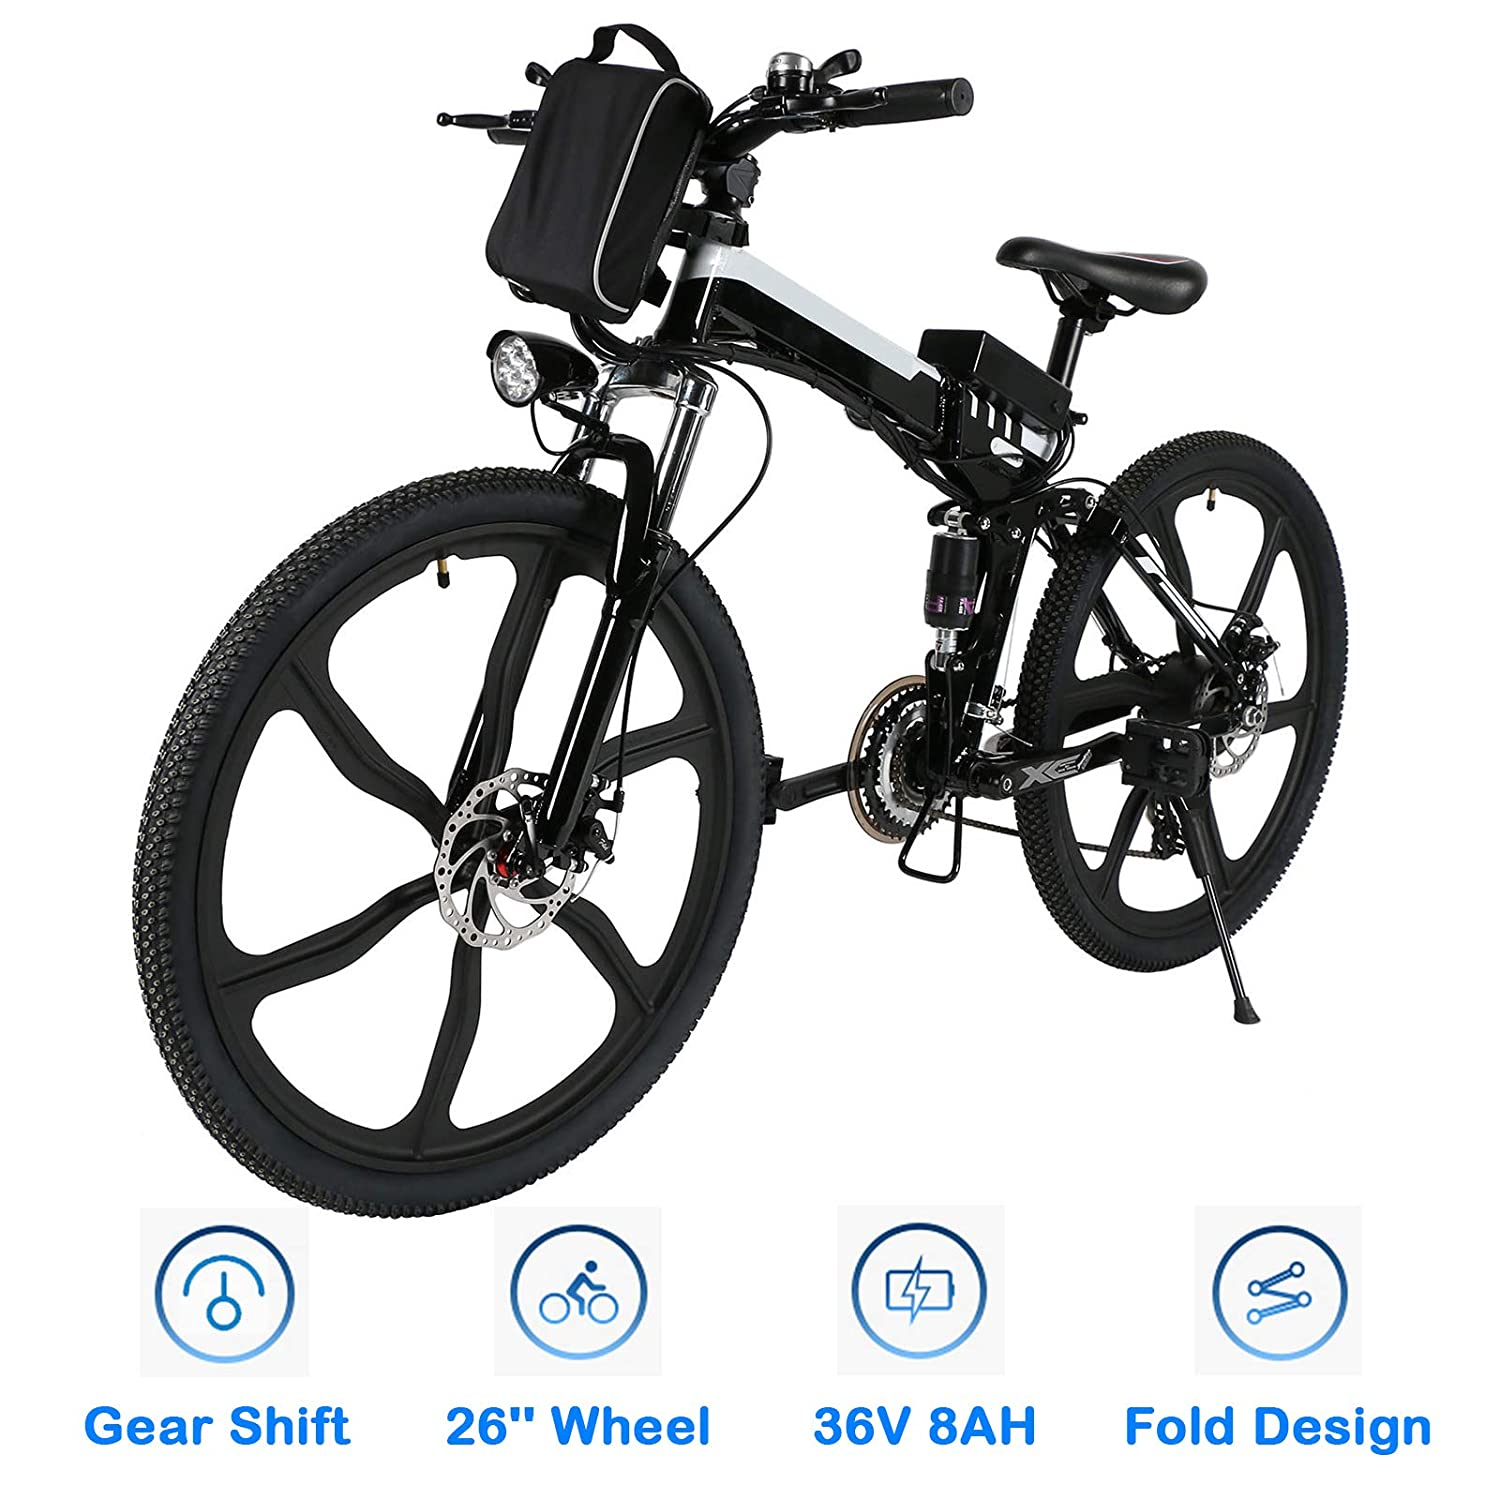 Bestlucky 26 Electric Bike with Removable 36V 8Ah Lithium-Ion Battery, Electric Mountain Bike for Adult US Stock